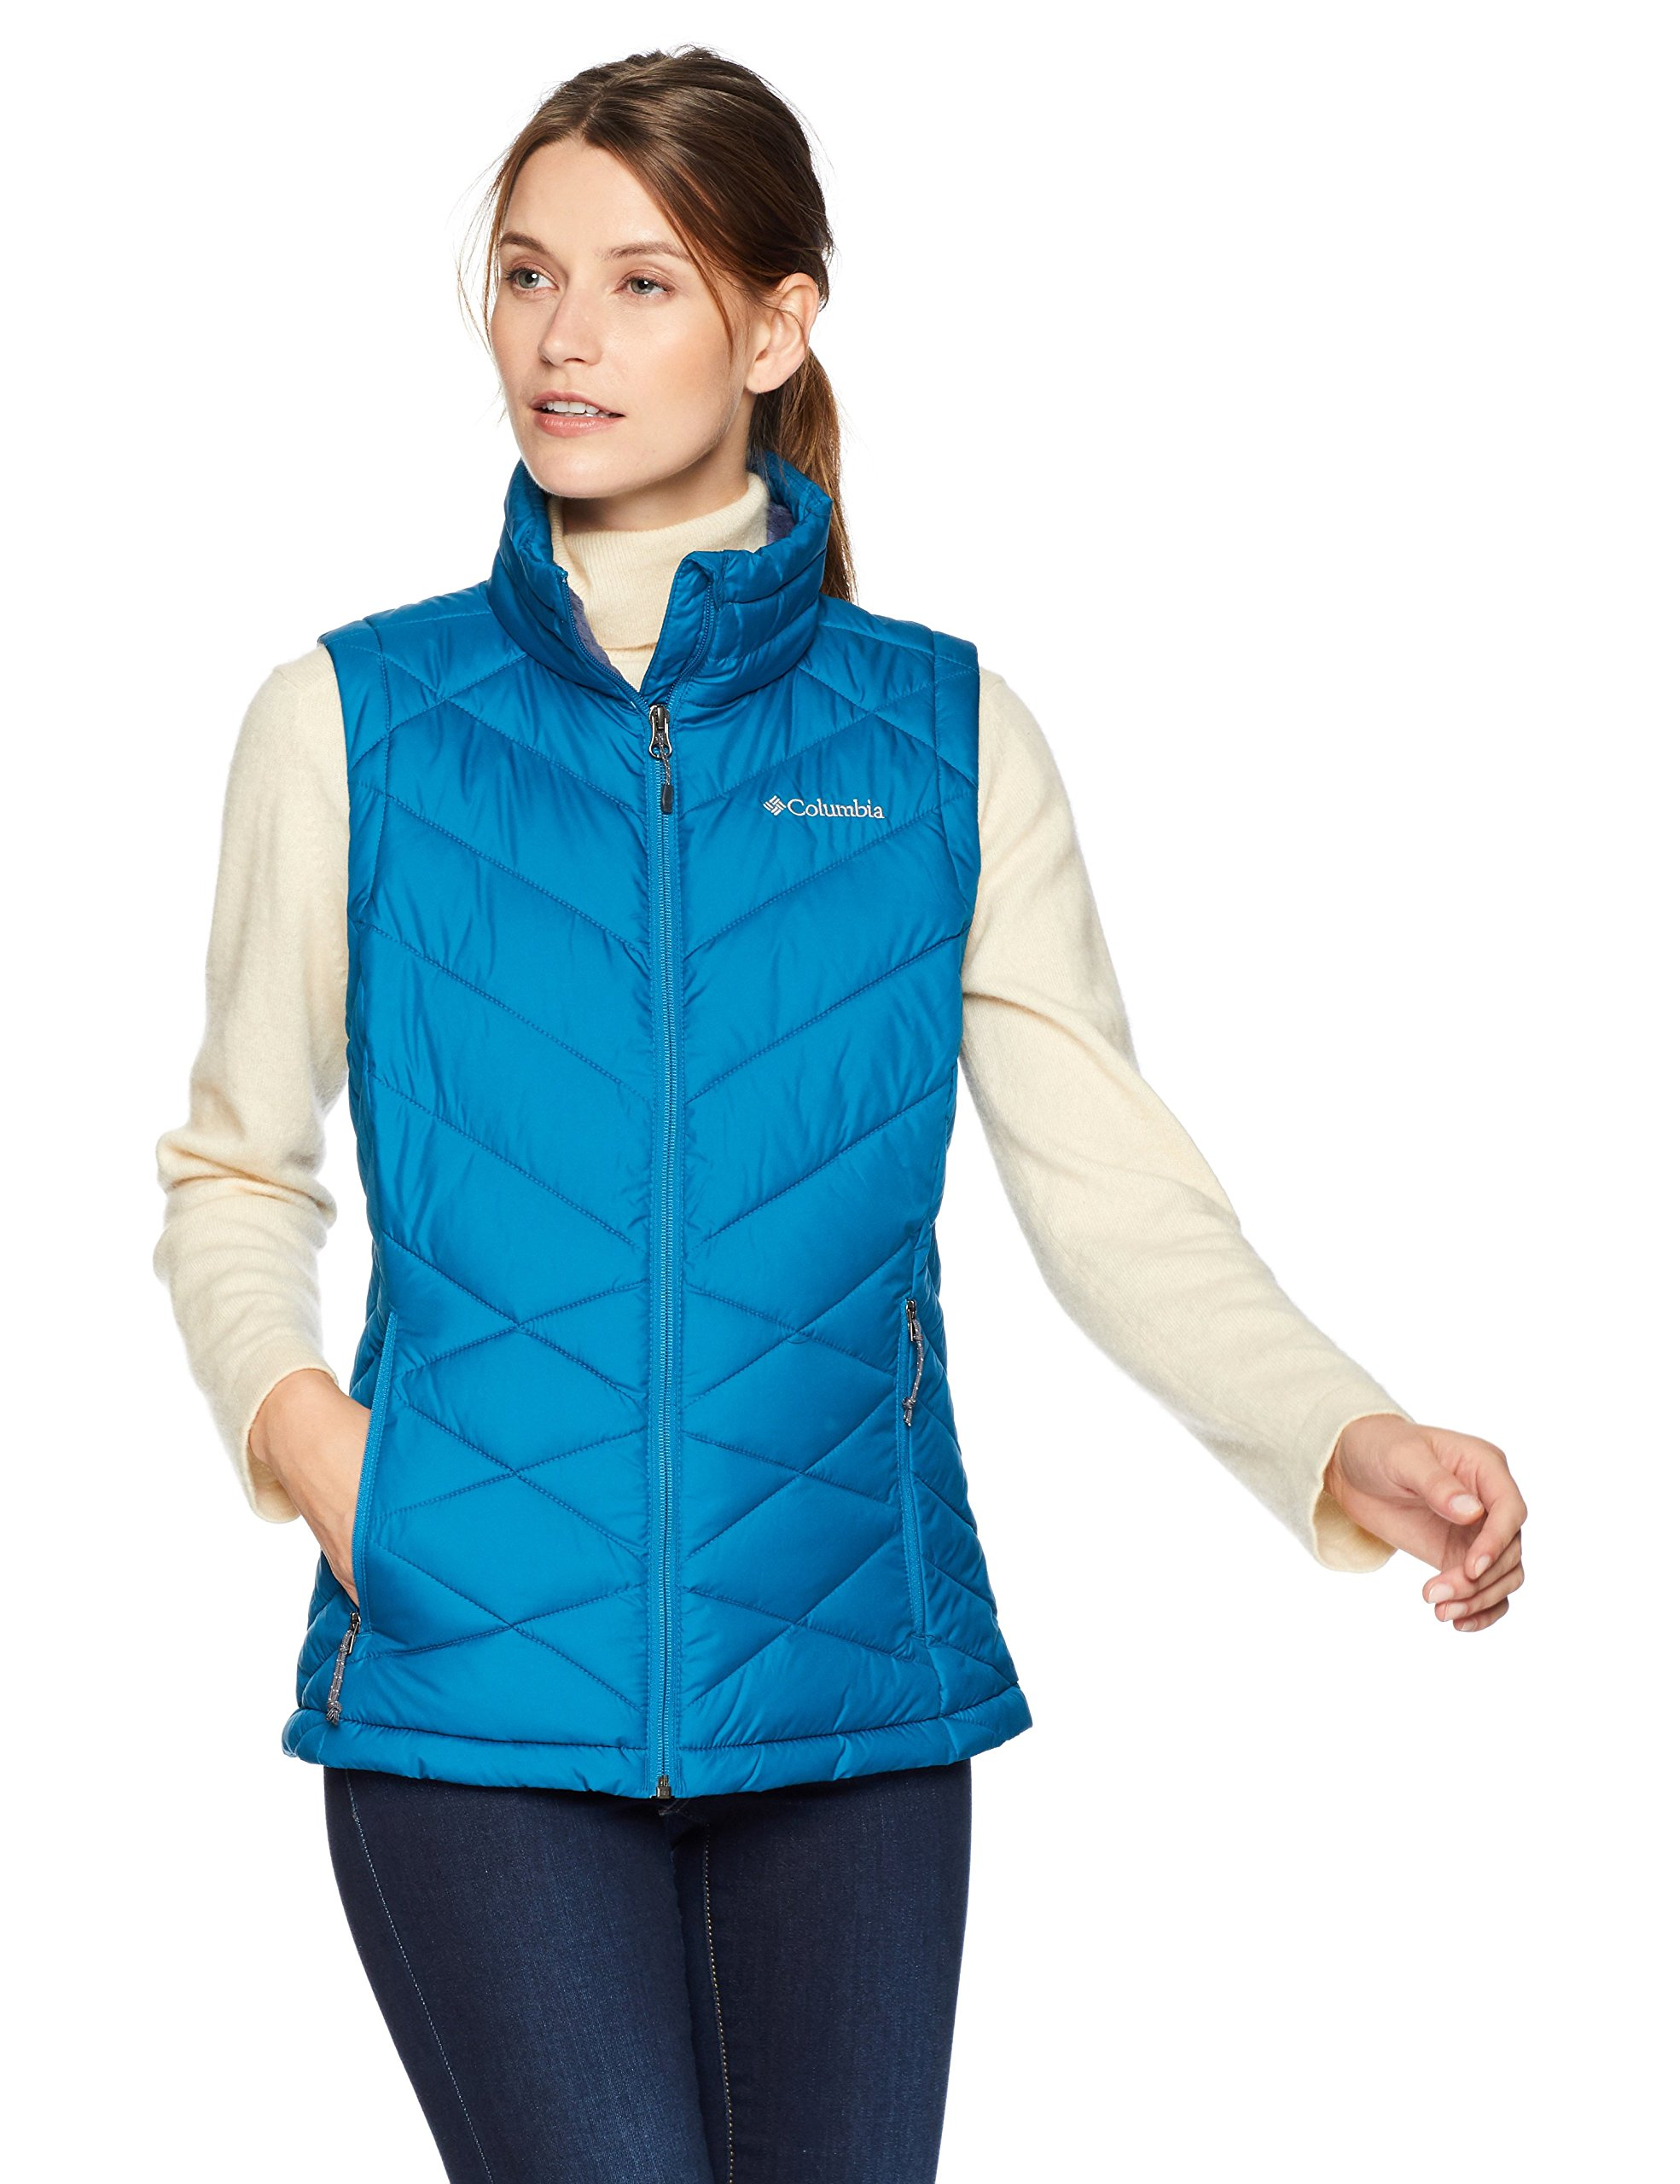 Columbia Women's Standard Heavenly Vest, Lagoon, X-Small by Columbia